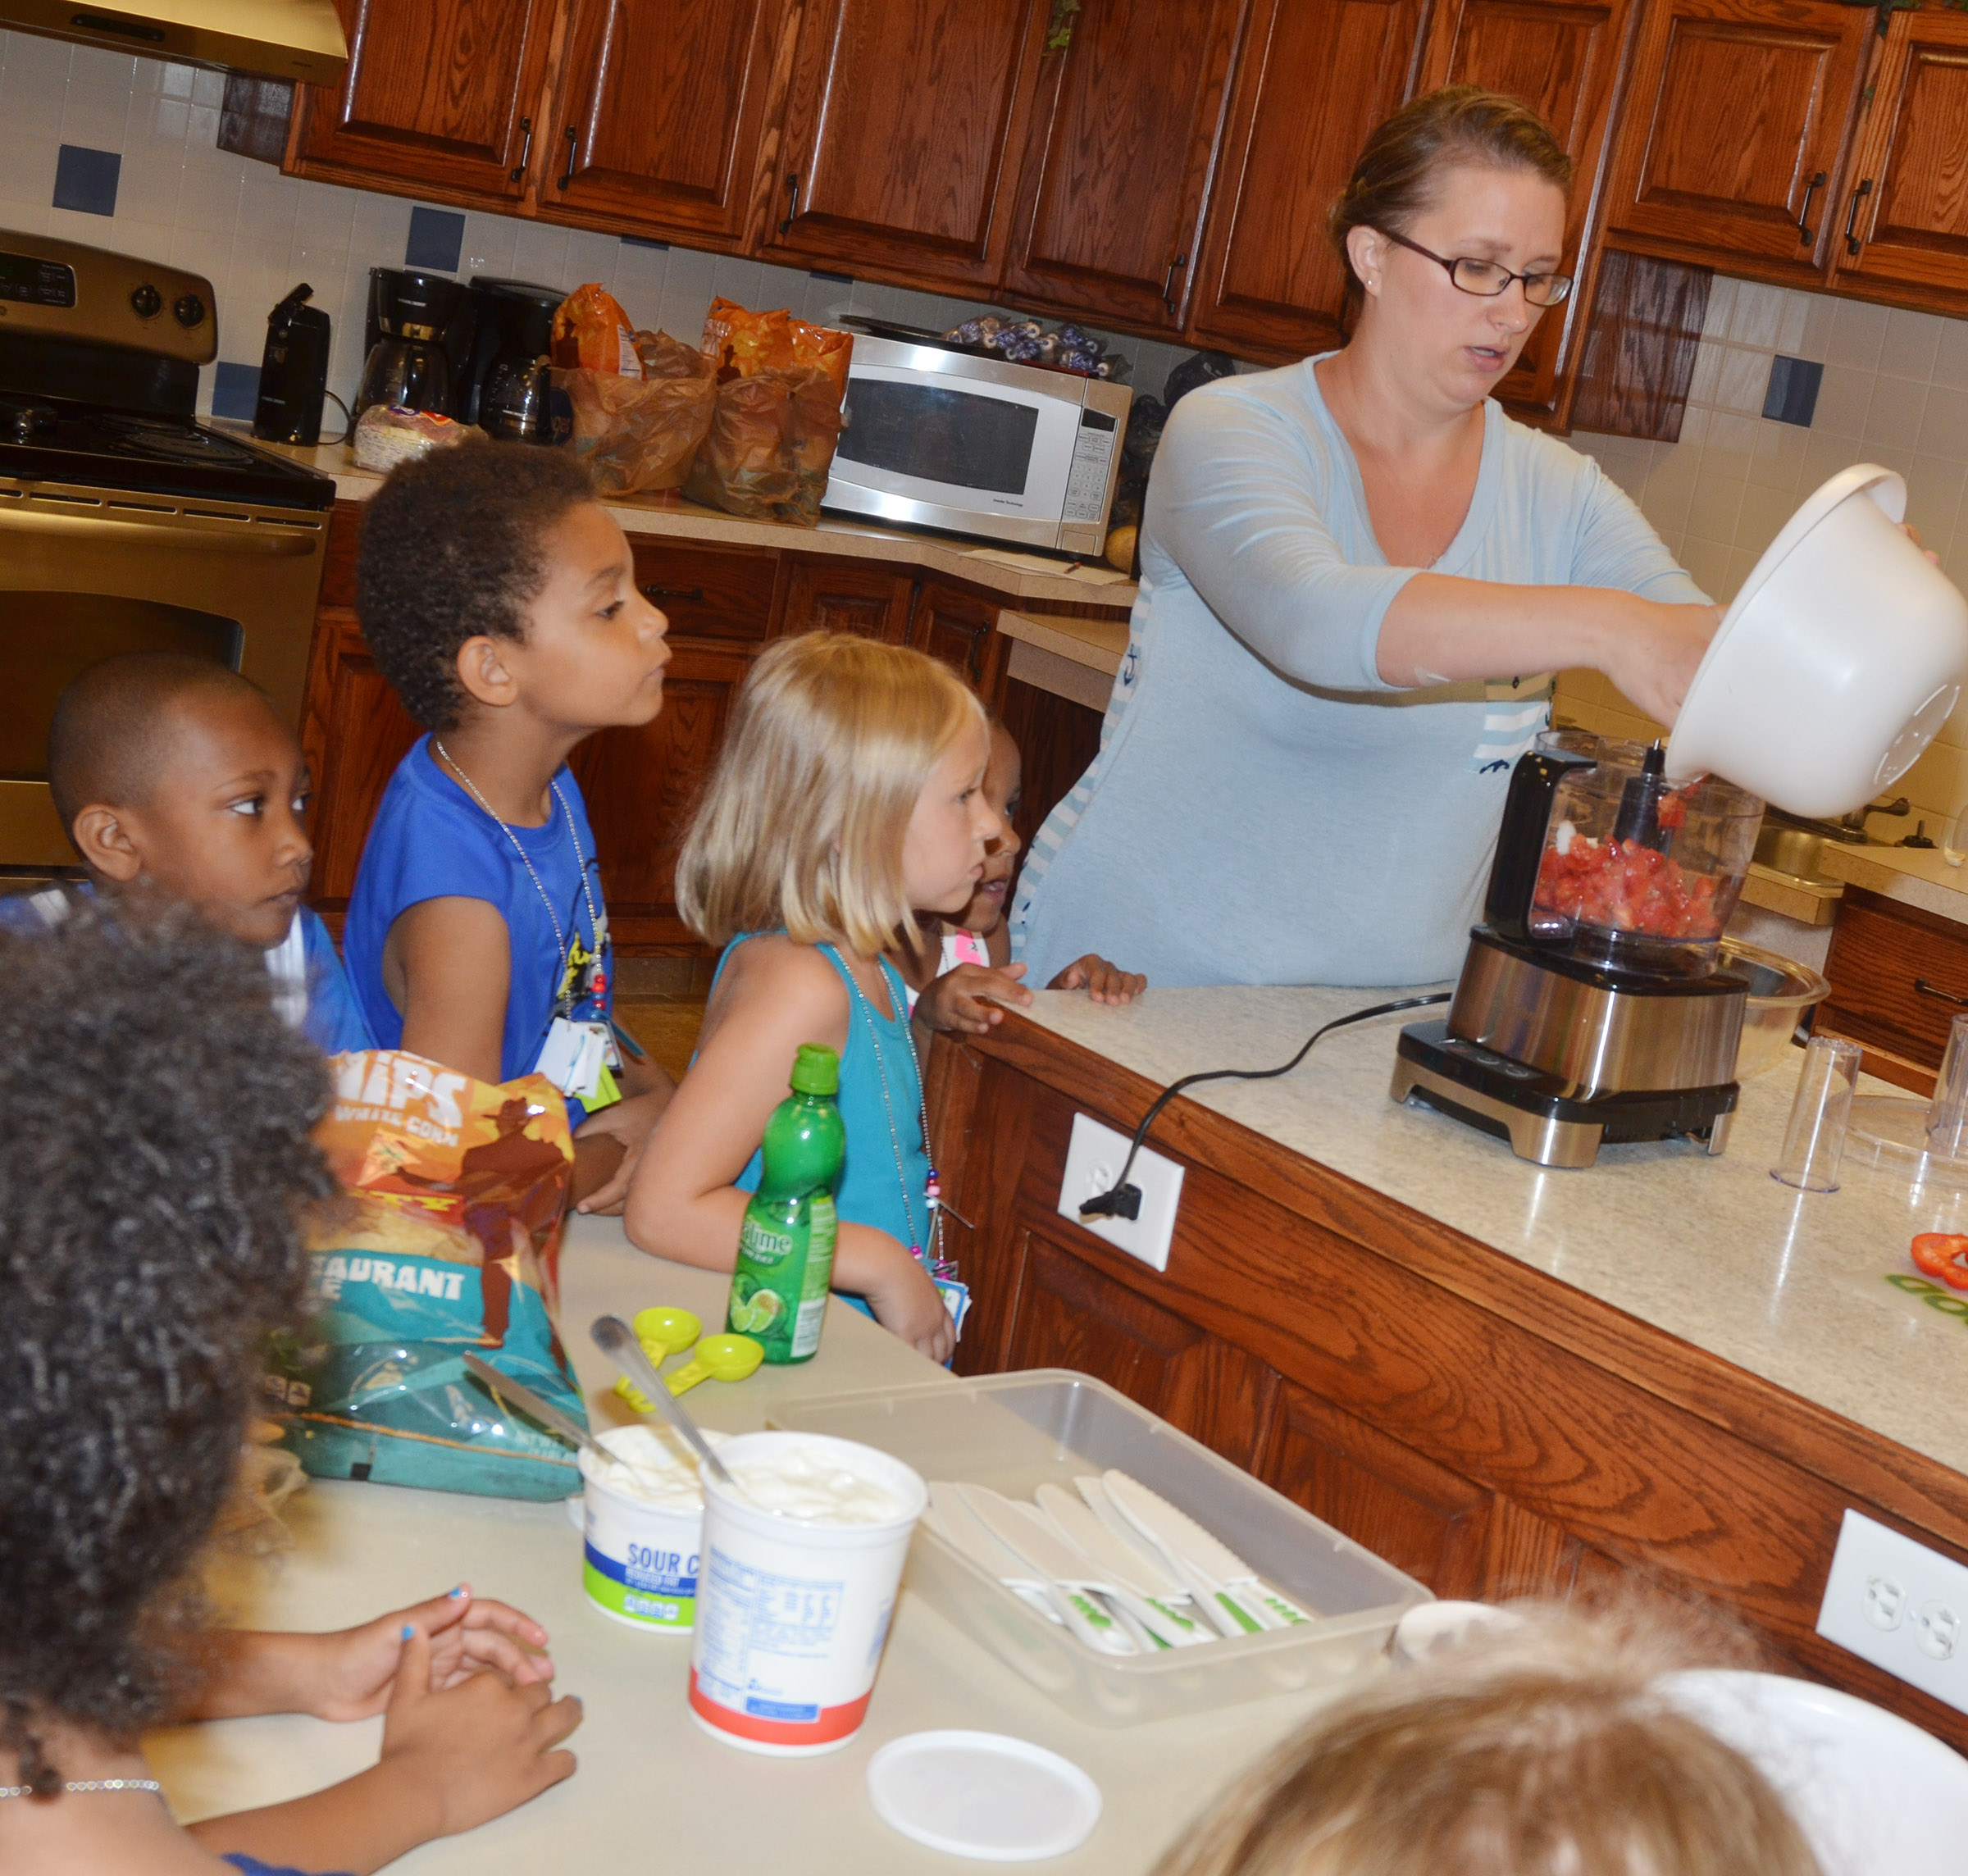 CES Wings Express assistant Jessica Williams shows how salsa is made in a food processor.